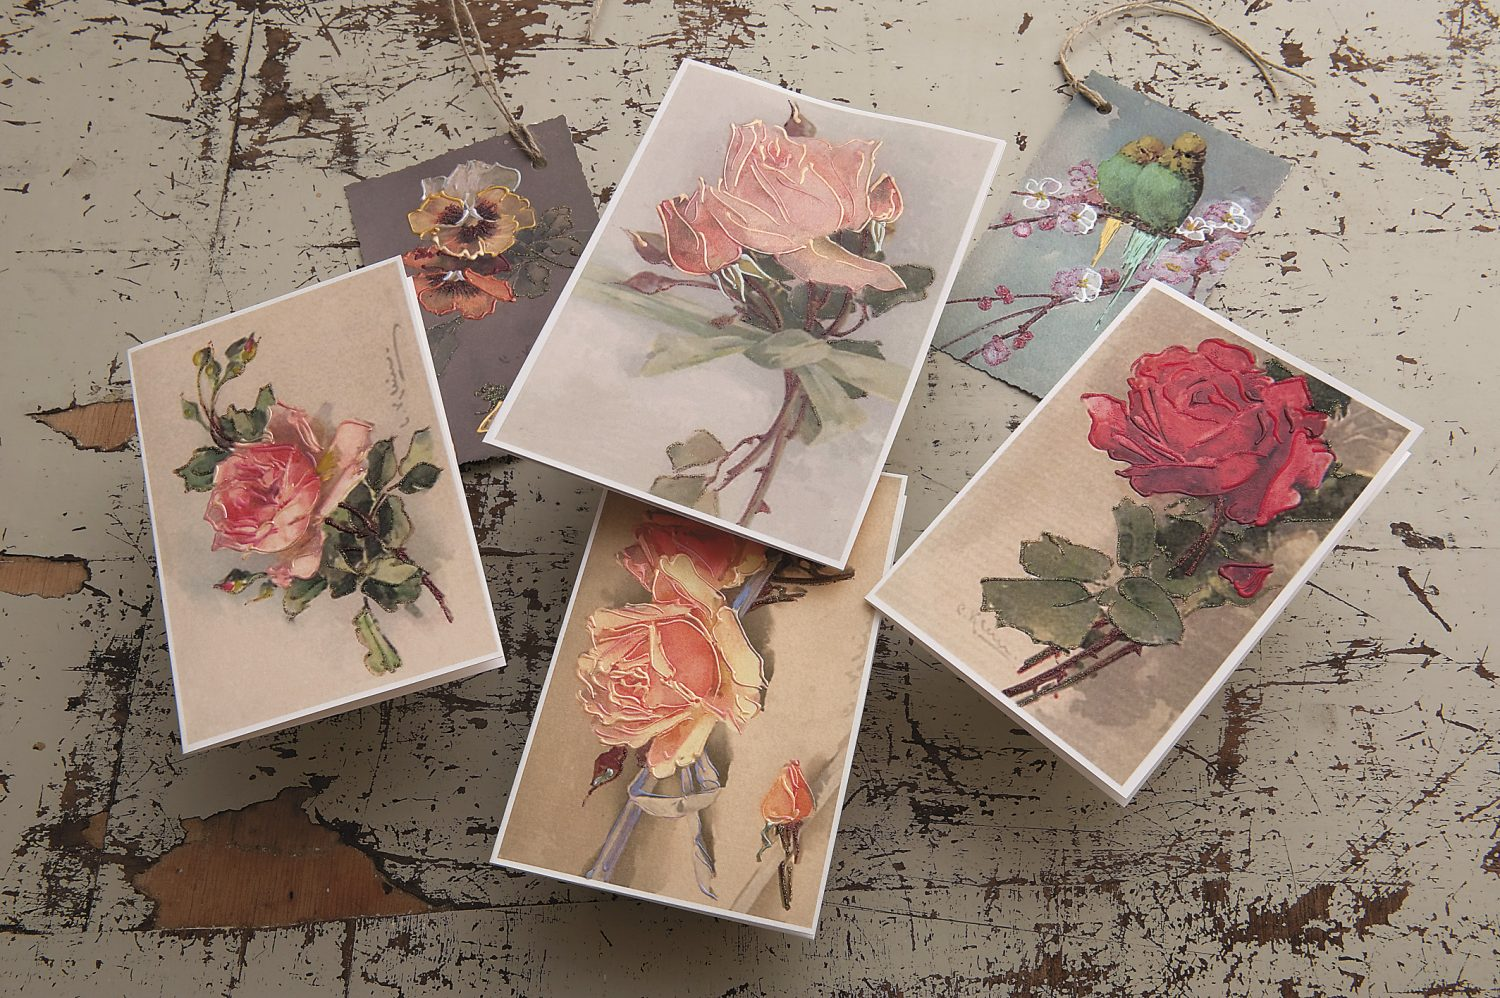 a selection of cards displayed on the distressed dining-room table